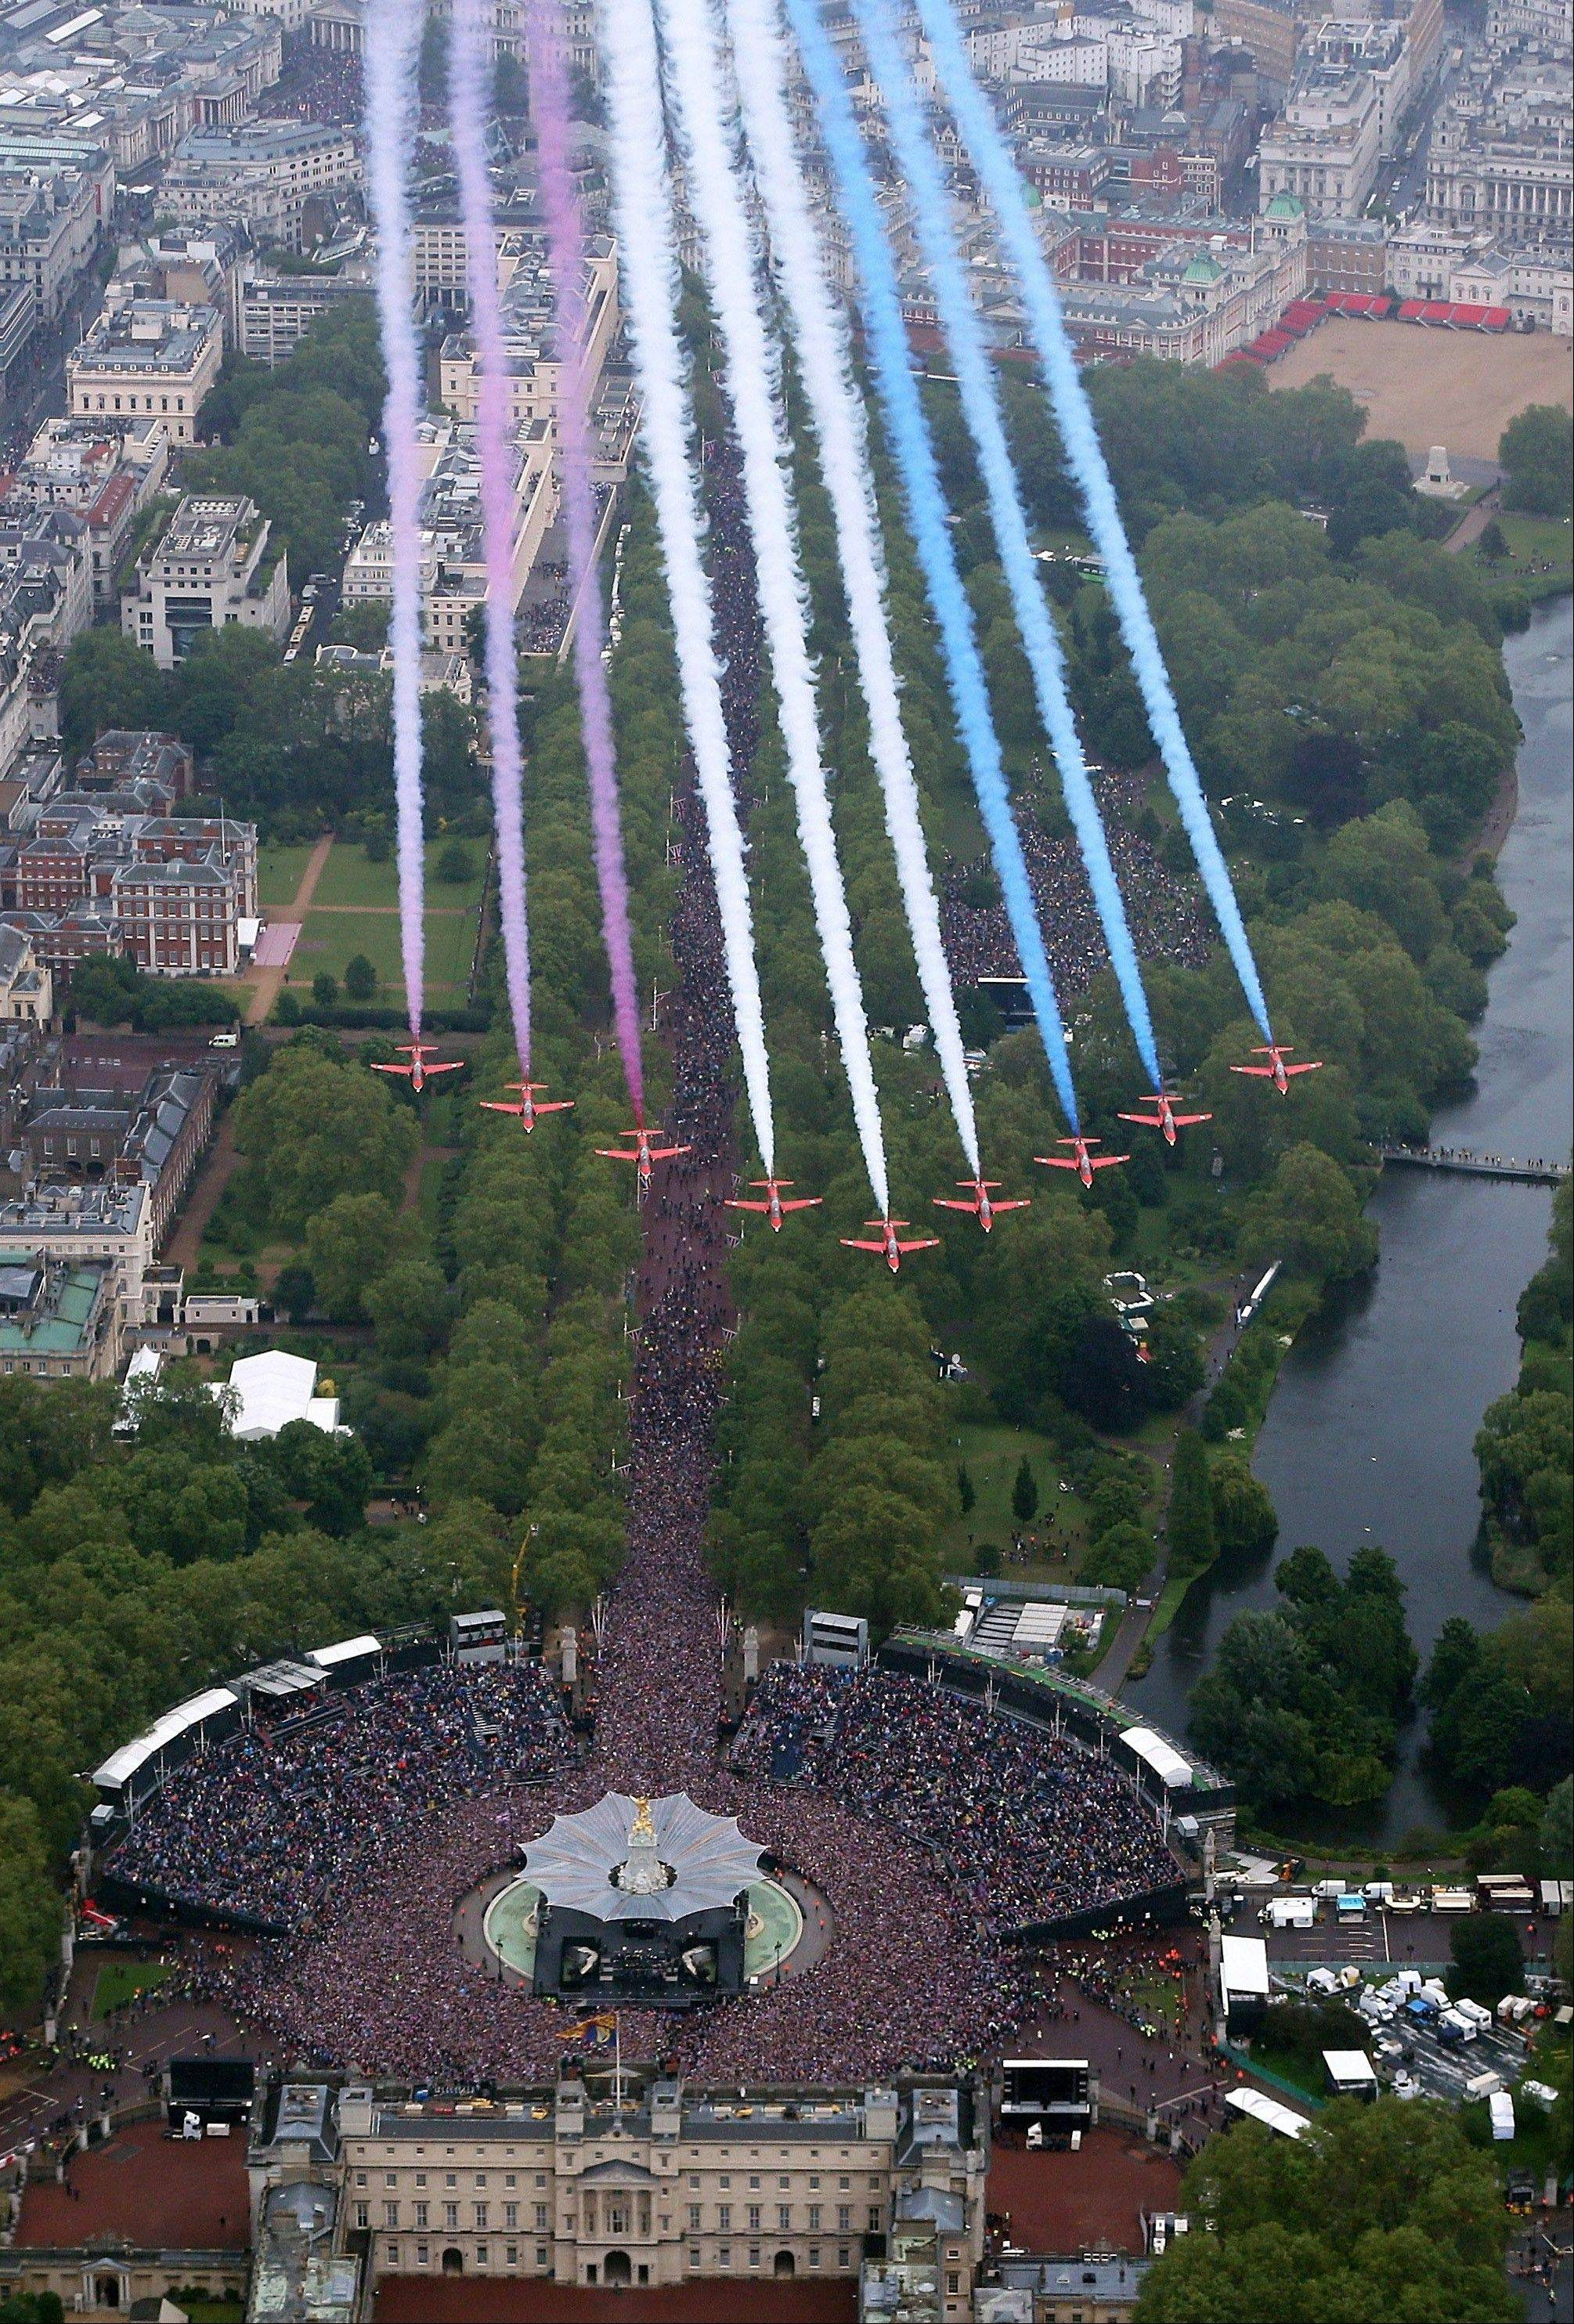 "The British Royal Air Force Red Arrows fly in formation over Buckingham Palace in London to celebrate Queen Elizabeth's Diamond Jubilee as the royal family stood on the balcony Tuesday June 5, 2012. Pealing church bells and crowds cheering ""God save the queen!"" greeted Queen Elizabeth II on Tuesday as she arrived for a service at St. Paul's Cathedral on the last of four days of Diamond Jubilee celebrations honoring her 60 years on the throne."